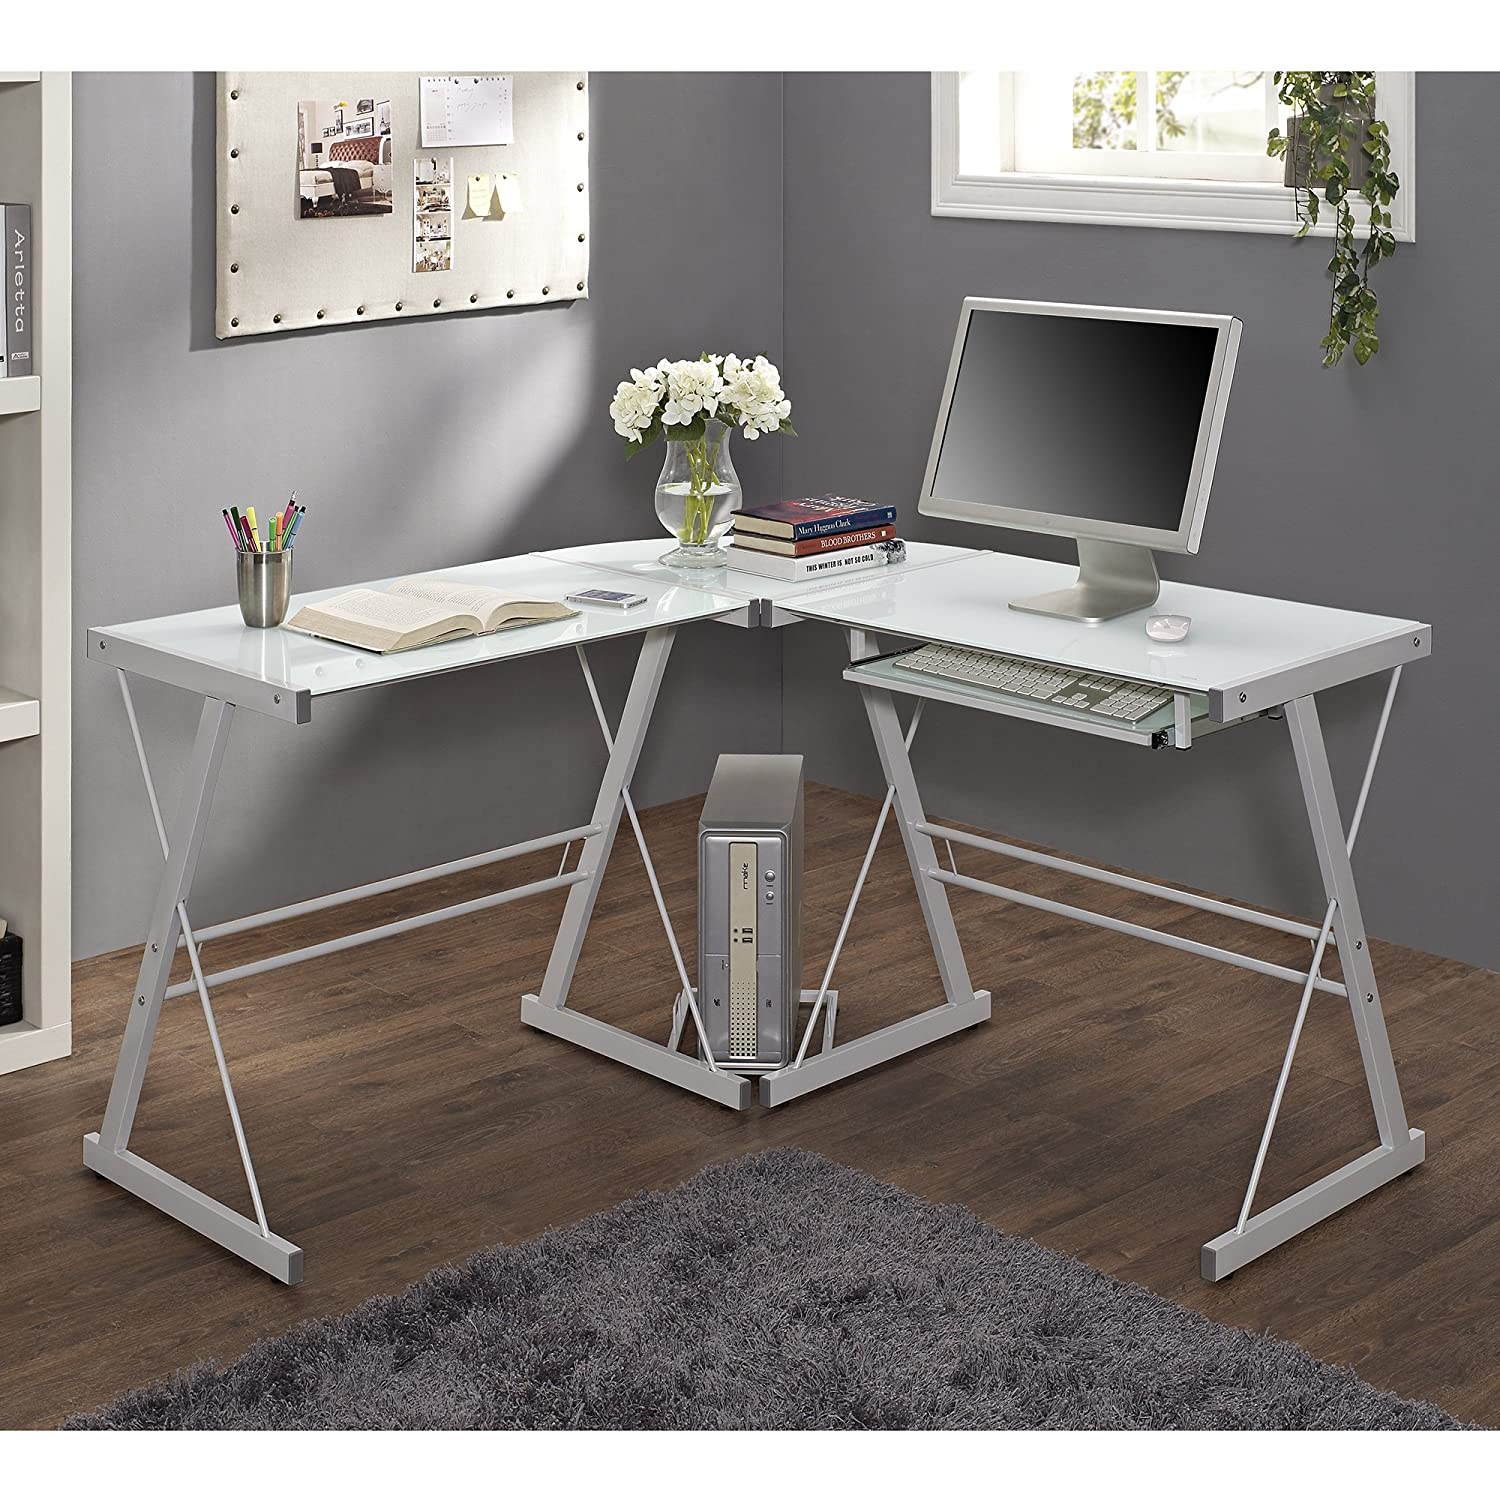 Amazon.com: WE Furniture Glass Metal Corner Computer Desk: Kitchen & Dining